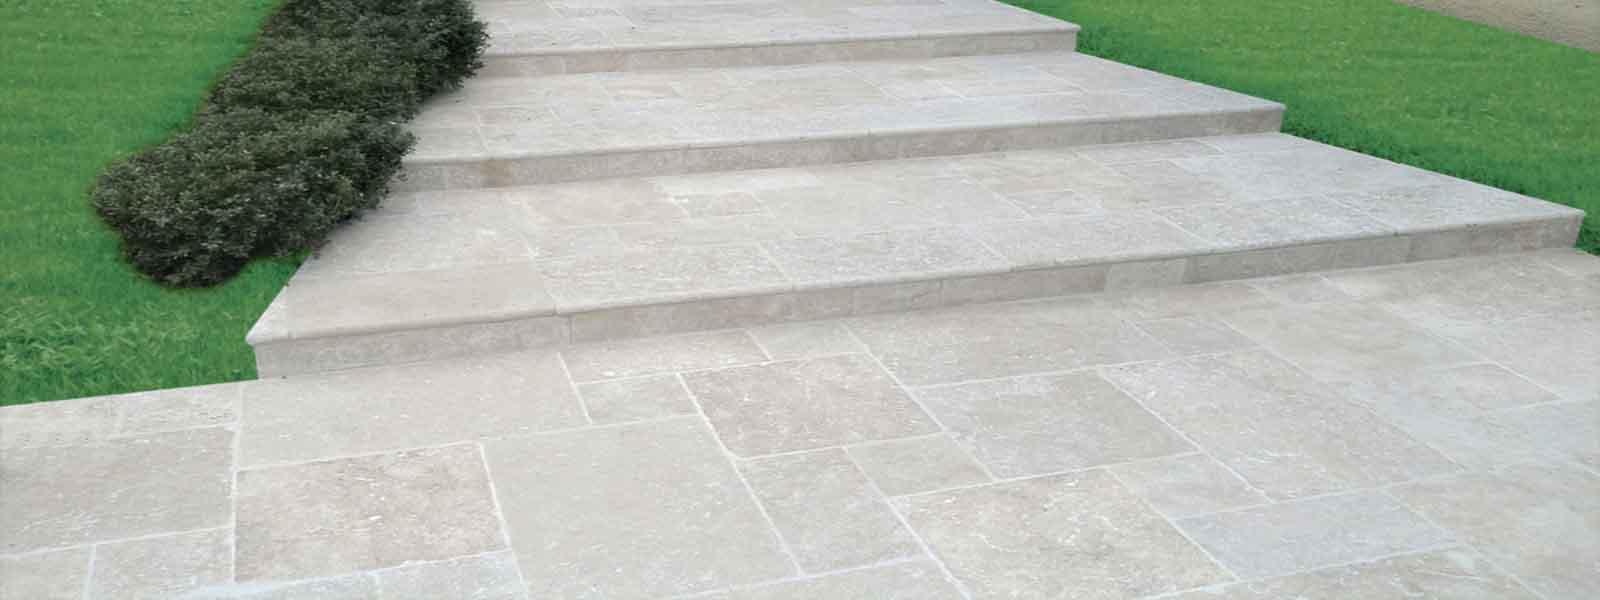 Carrelage ext rieur travertin en pierre naturelle pour for Dallage terrasse exterieure